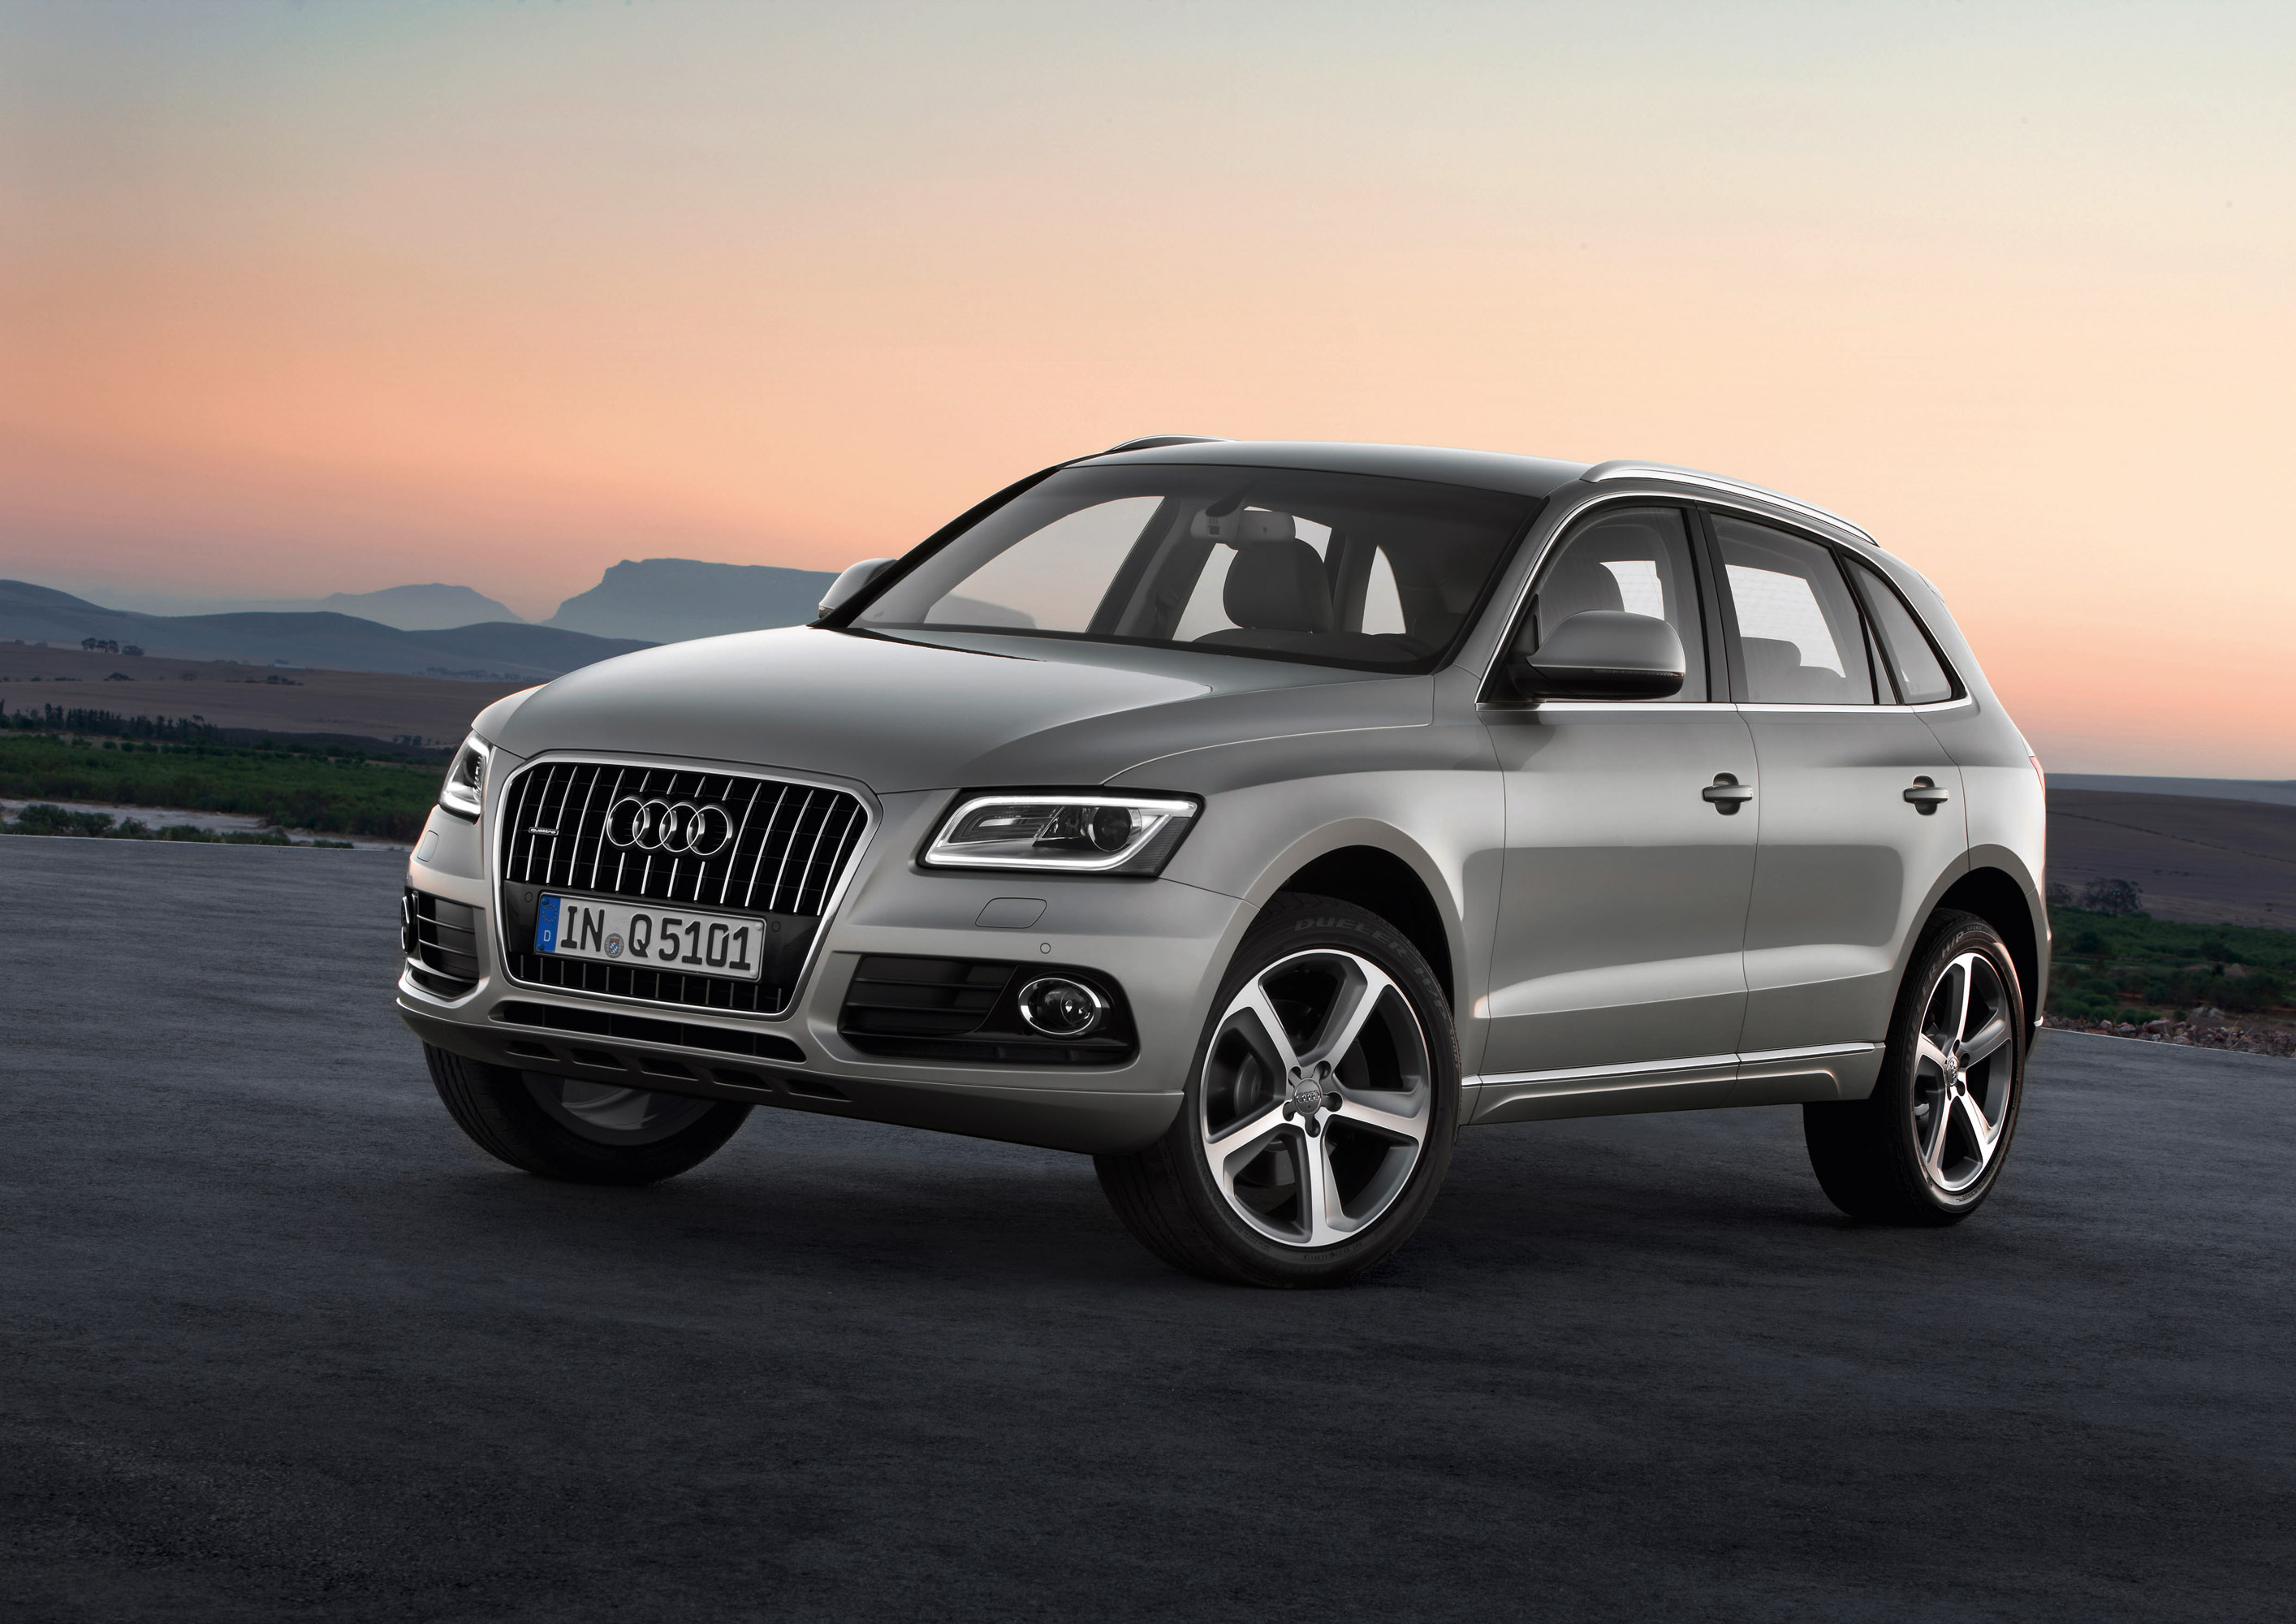 2013 audi q5 the updated high performance suv. Black Bedroom Furniture Sets. Home Design Ideas